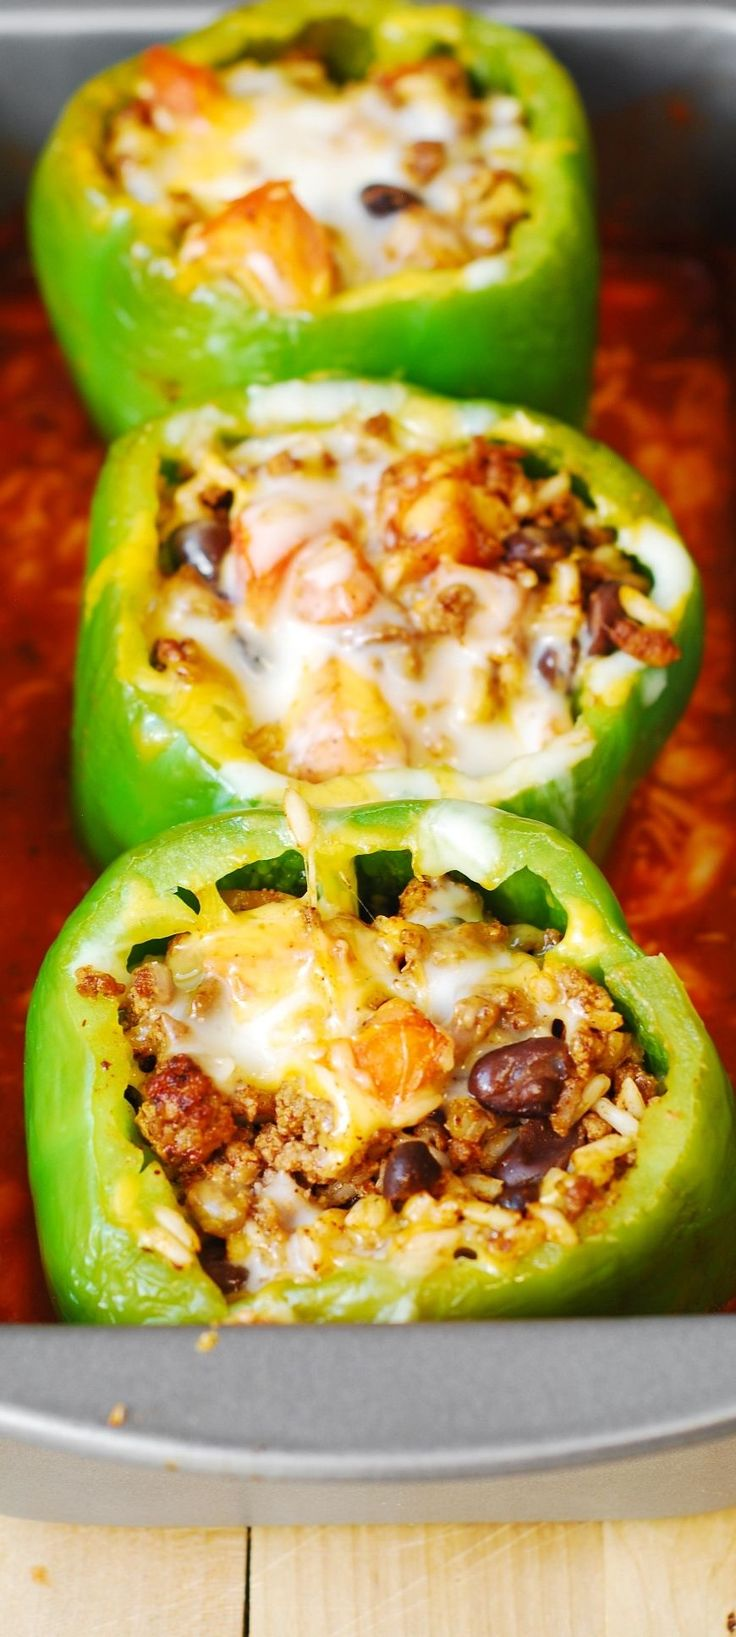 Mexican Stuffed Peppers – stuffed with Mexican ground beef, black beans, rice, tomatoes, cheese. Delicious! #gluten_free #glutenfree #recipes #healthy #gluten #recipe